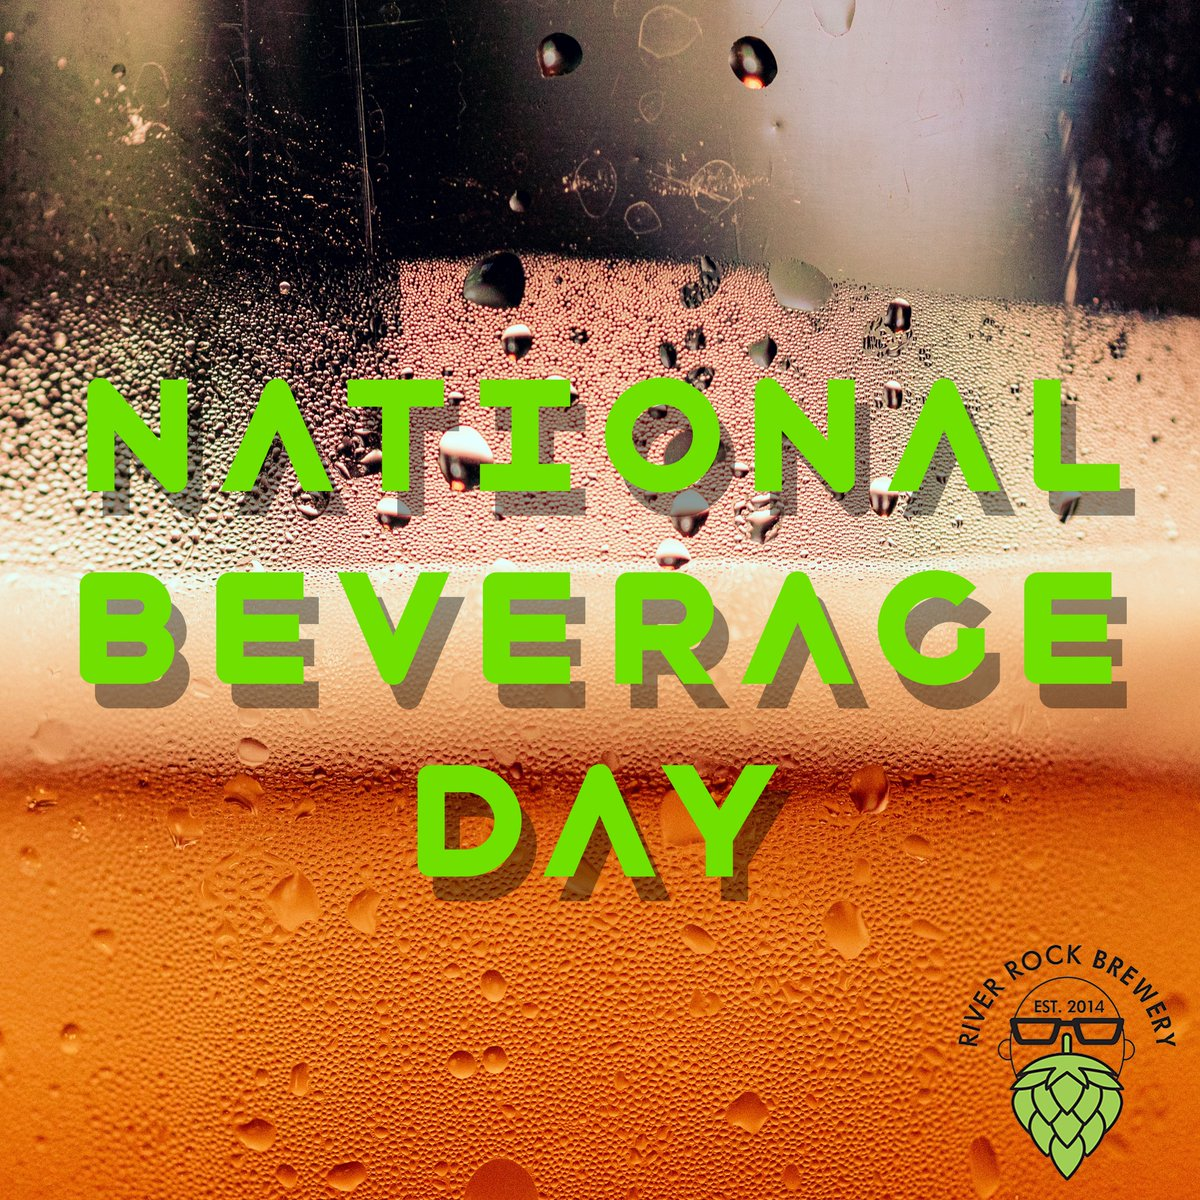 It's National Beverage Day! Cheers! Post a picture of yourself with your favorite flavor of our beer with the hashtag #nationalbeverageday and tag us! #beerselfie #craftbeer #craftbeerlovers #microbrew #microbrewery #selfie #nanobrew #nanobrewery #supportyourlocalbrewer https://t.co/ebbJU3bvZv